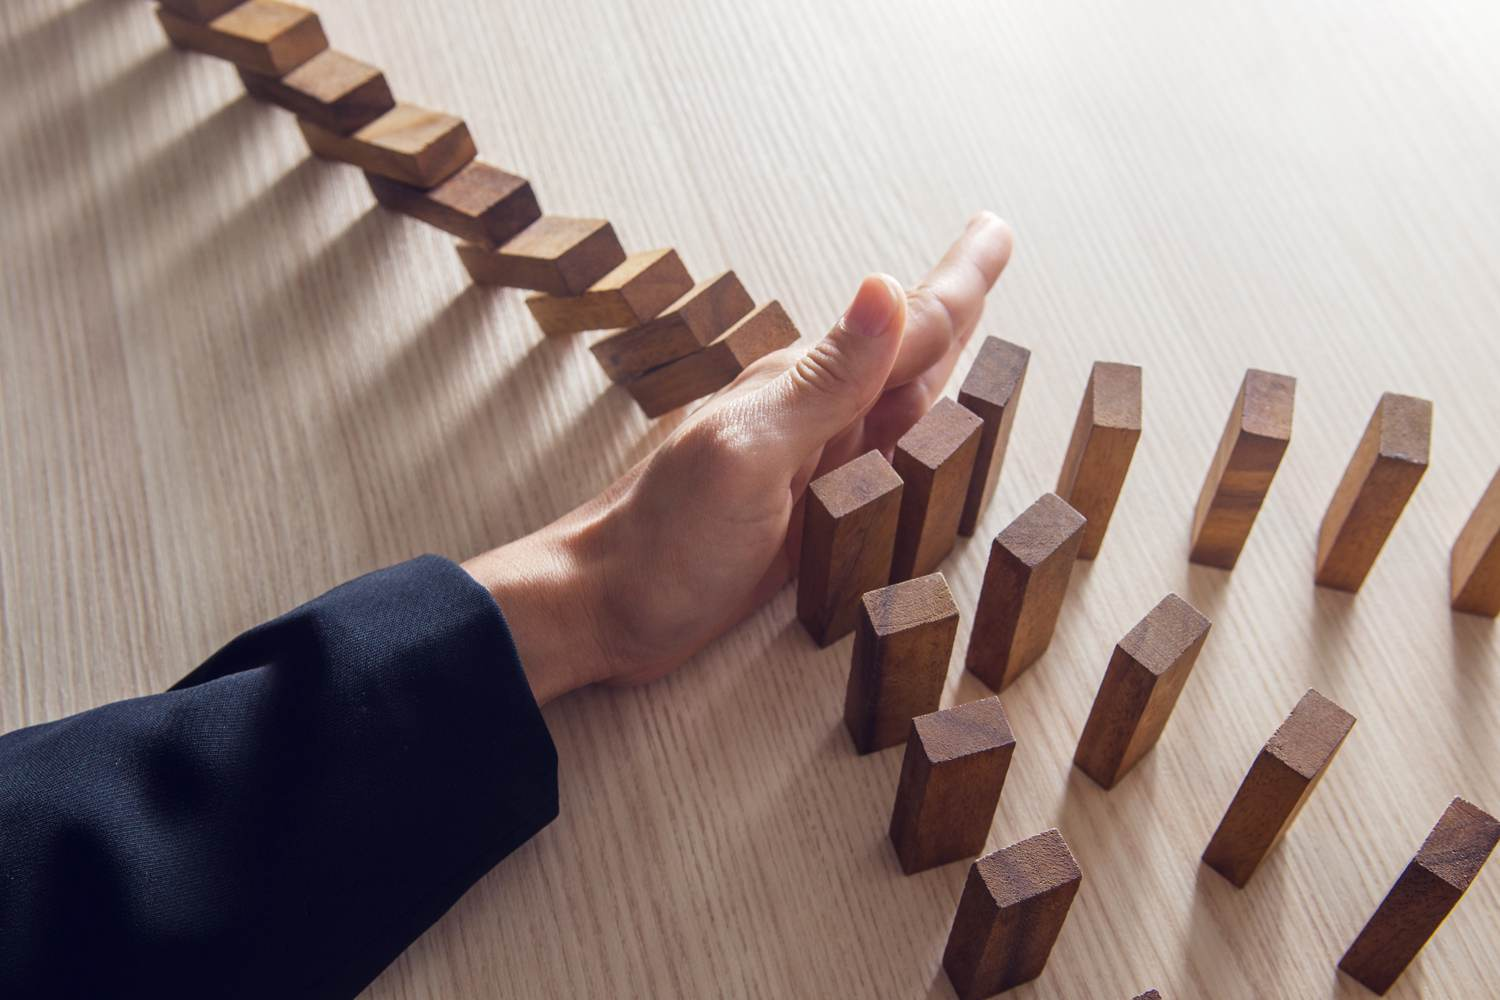 Stopping a falling domino effect - preventing corporate loss